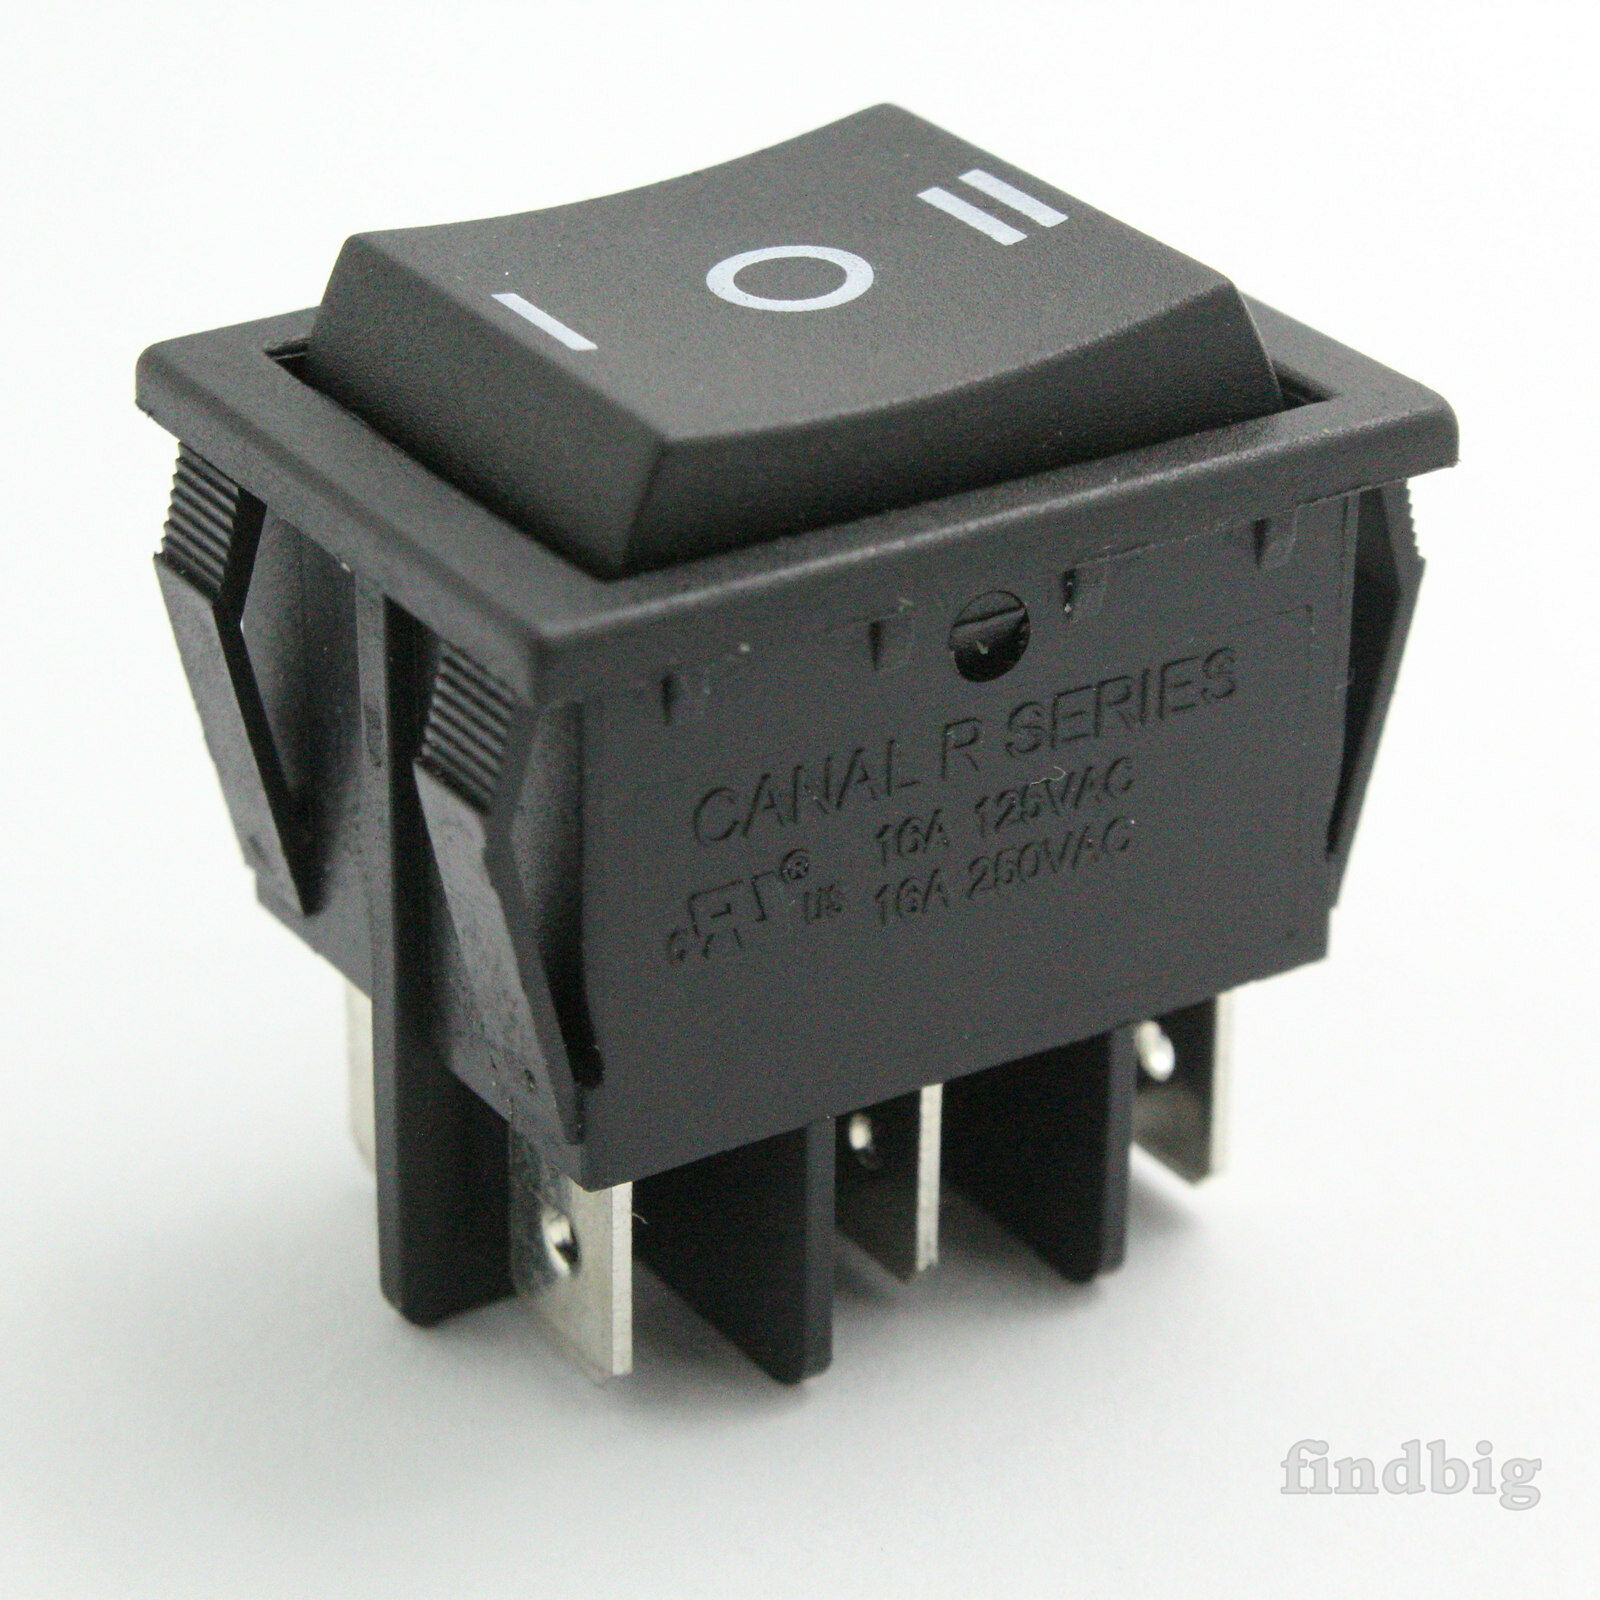 Rocker Switch Black Up To 20a 250v 10t85 6pin Canal R Serieslight Triple Light Wiring Diagram Leviton 1755 1 Of 4free Shipping